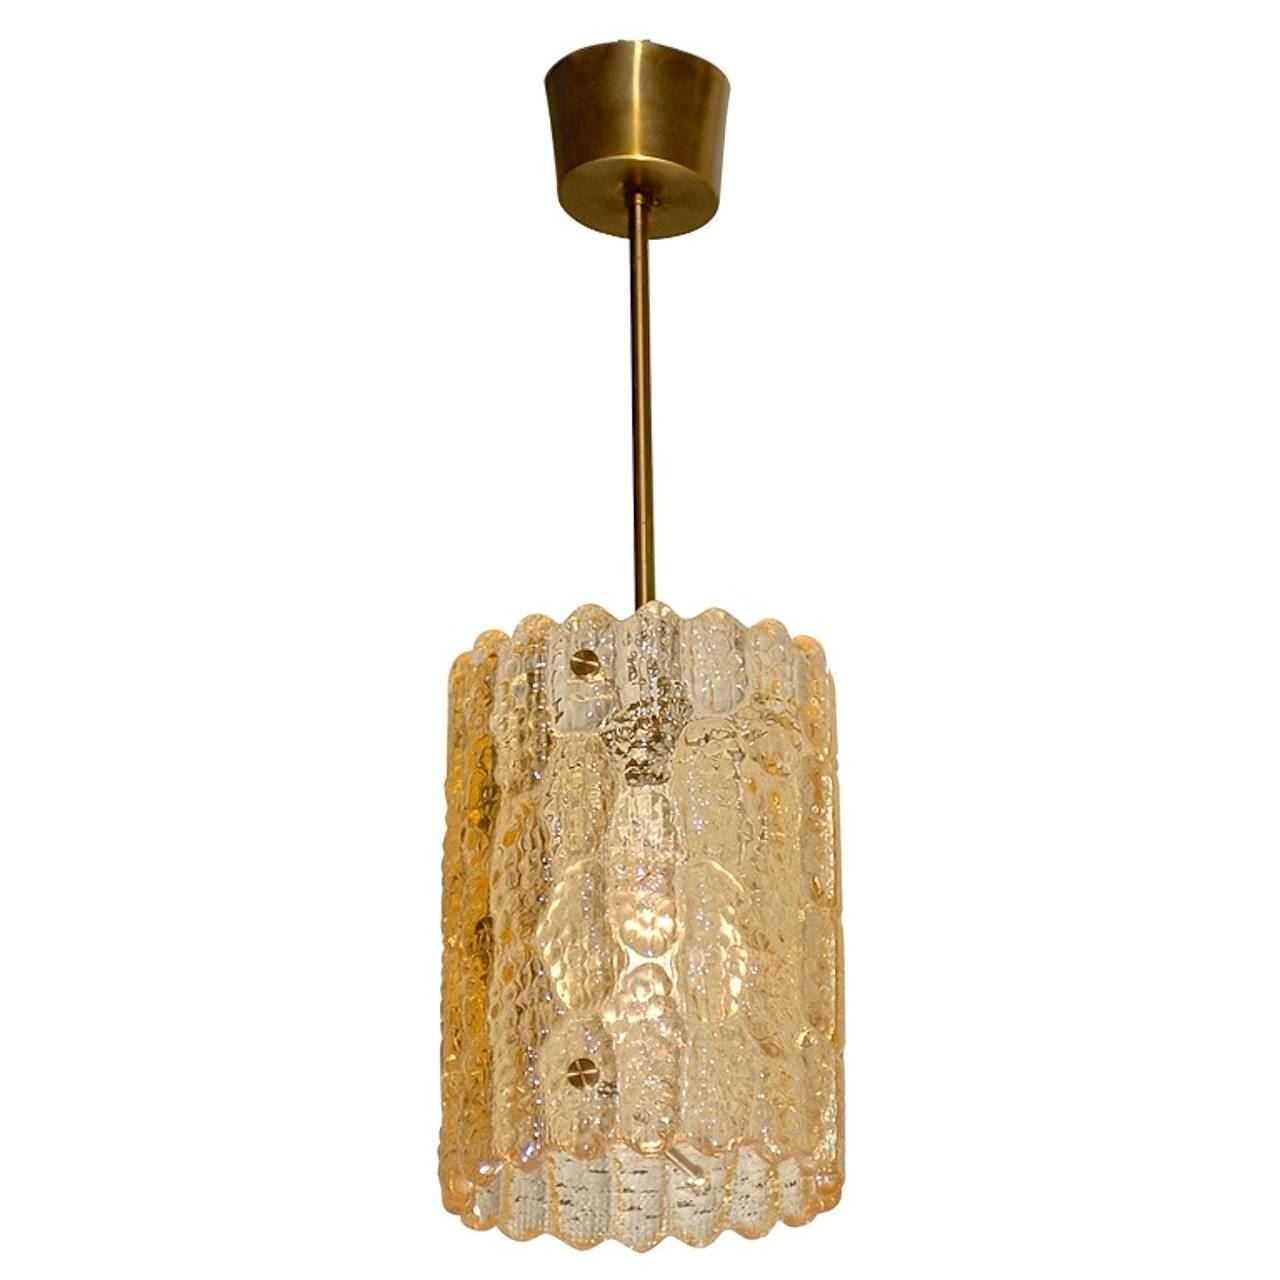 A Swedish crystal pendant light with brass hardware by Carl Fagerlund for Orrefors, Sweden.  Late 1940's - early 1950's.  The glass in this particular example happens to have a golden amber tint as opposed to clear.  Total height including